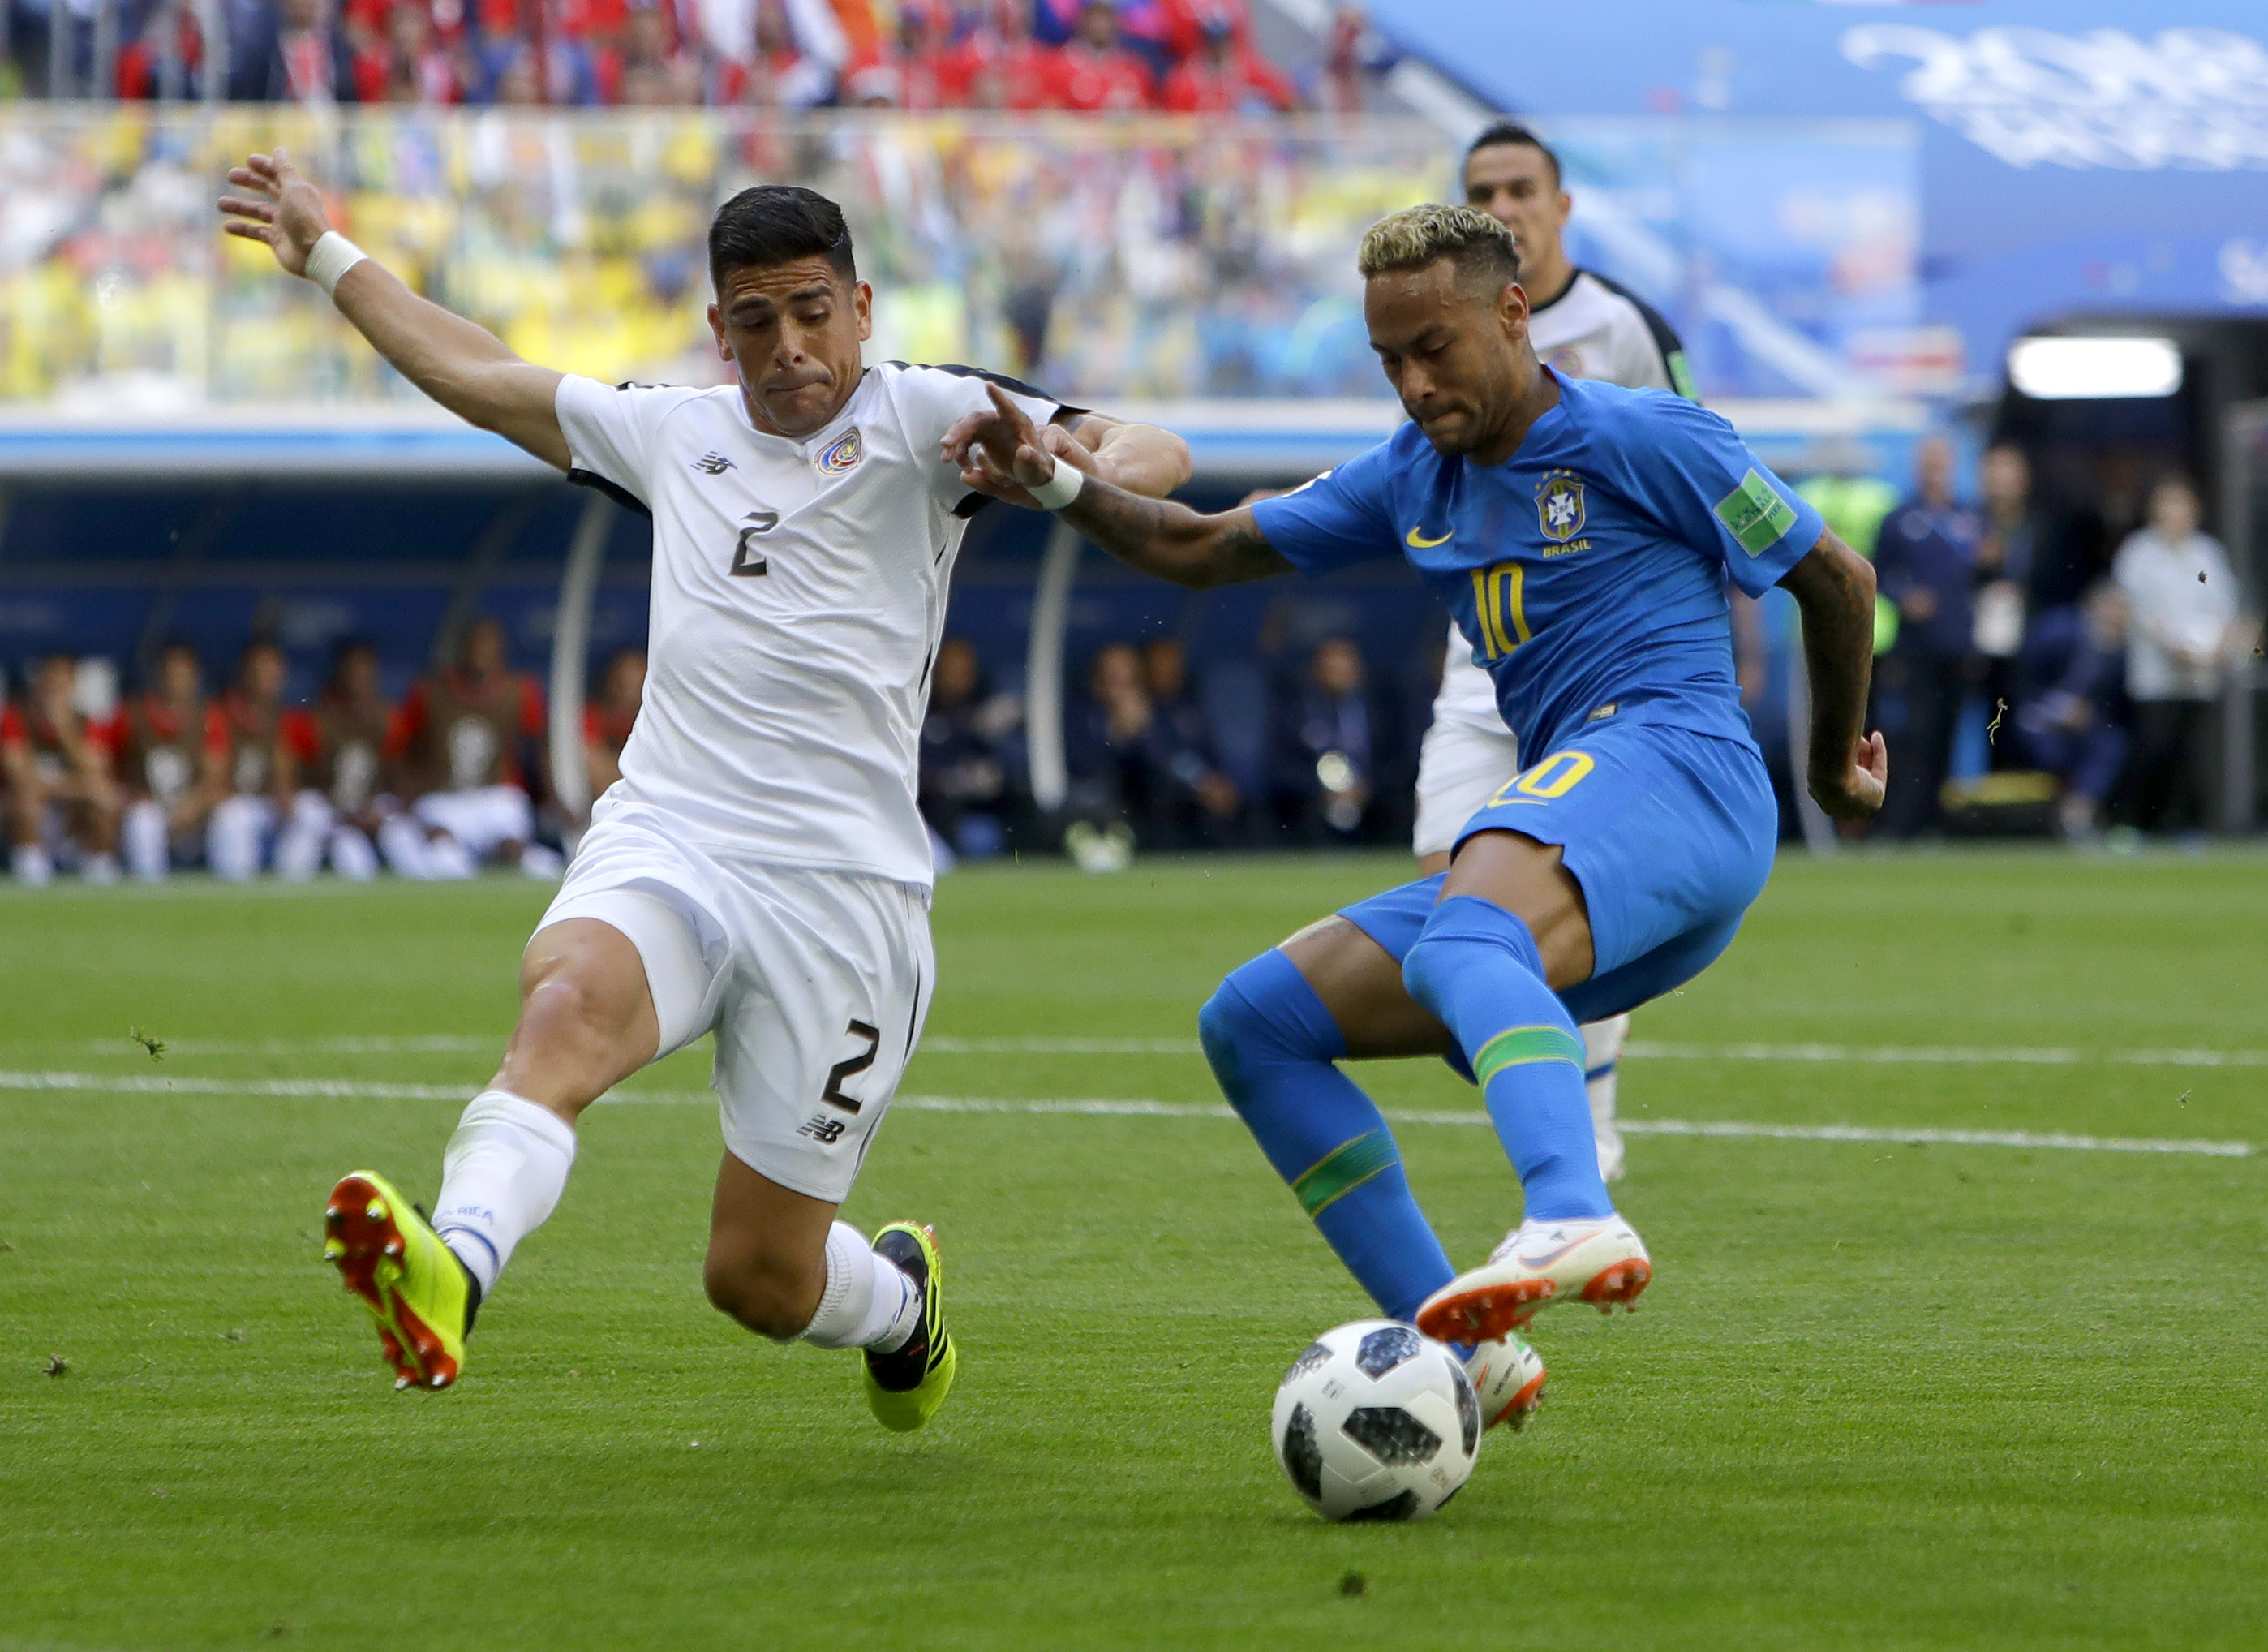 <div class='meta'><div class='origin-logo' data-origin='none'></div><span class='caption-text' data-credit='Alastair Grant/AP Photo'>Brazil's Neymar, right, looks to kick the ball past Costa Rica's Johnny Acosta during the group E match in the St. Petersburg Stadium on Friday, June 22.</span></div>